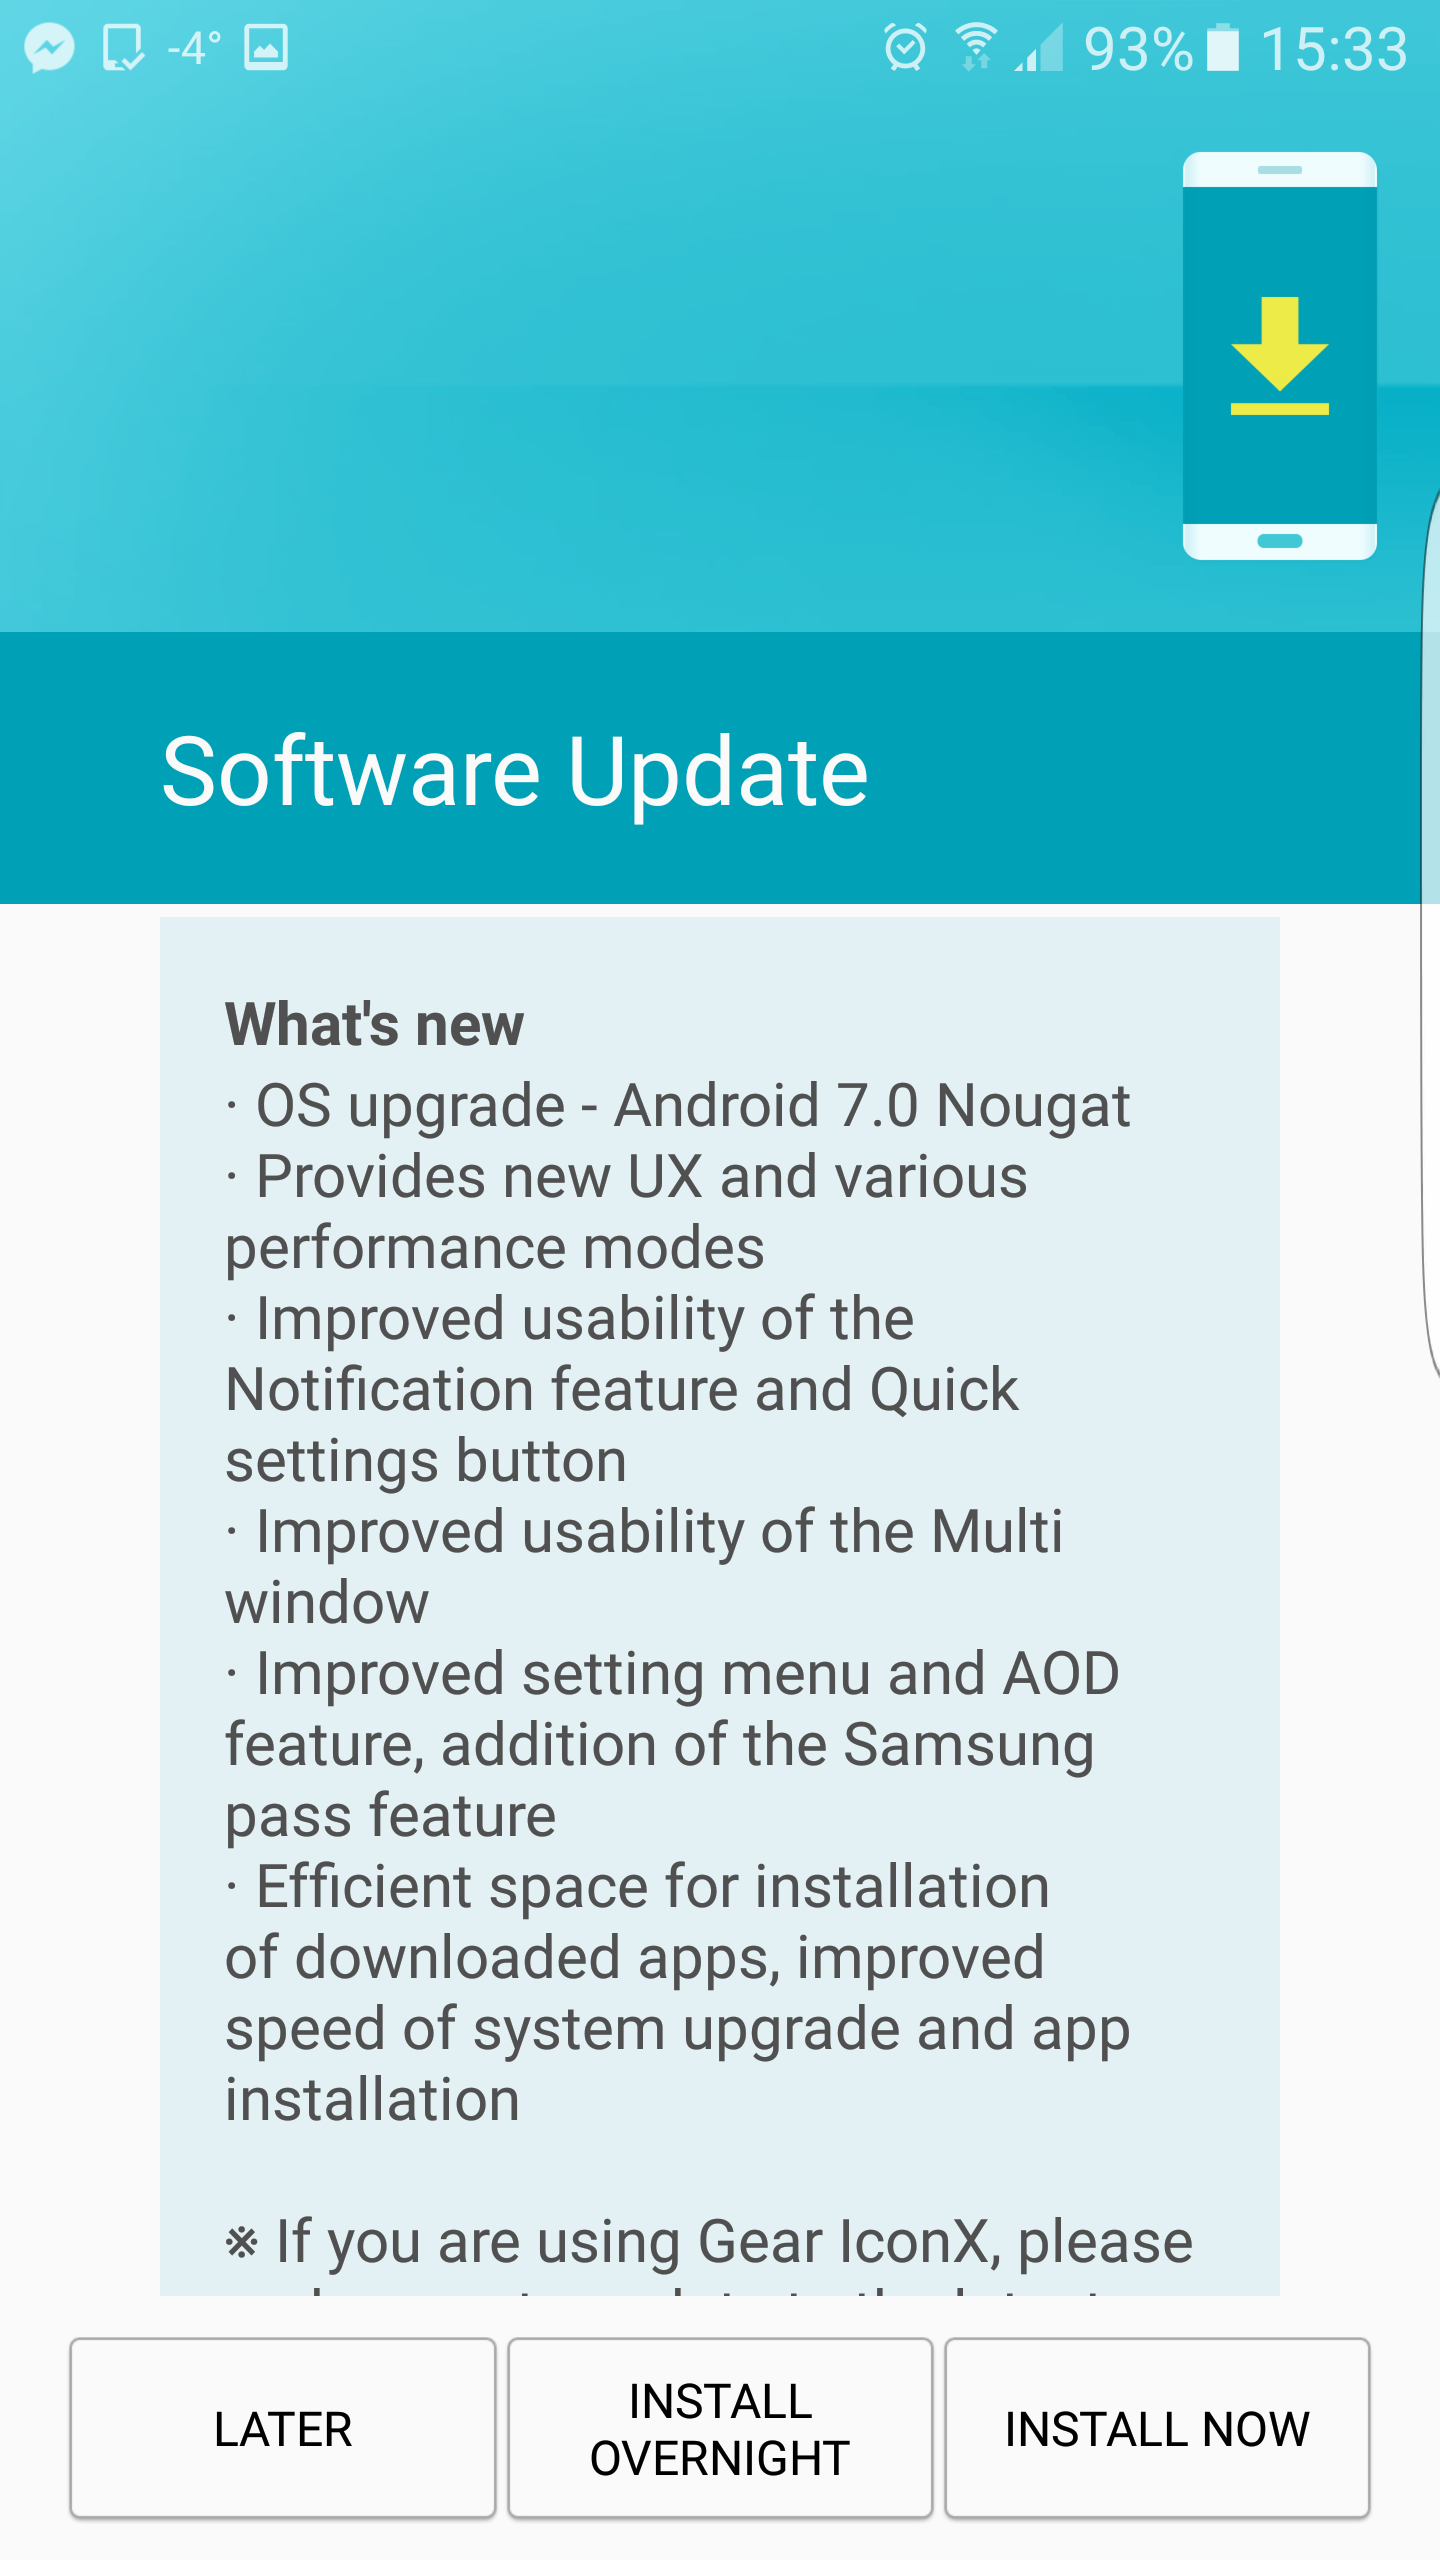 Android Nougat on Samsung Galaxy S7: A big step in the right direction